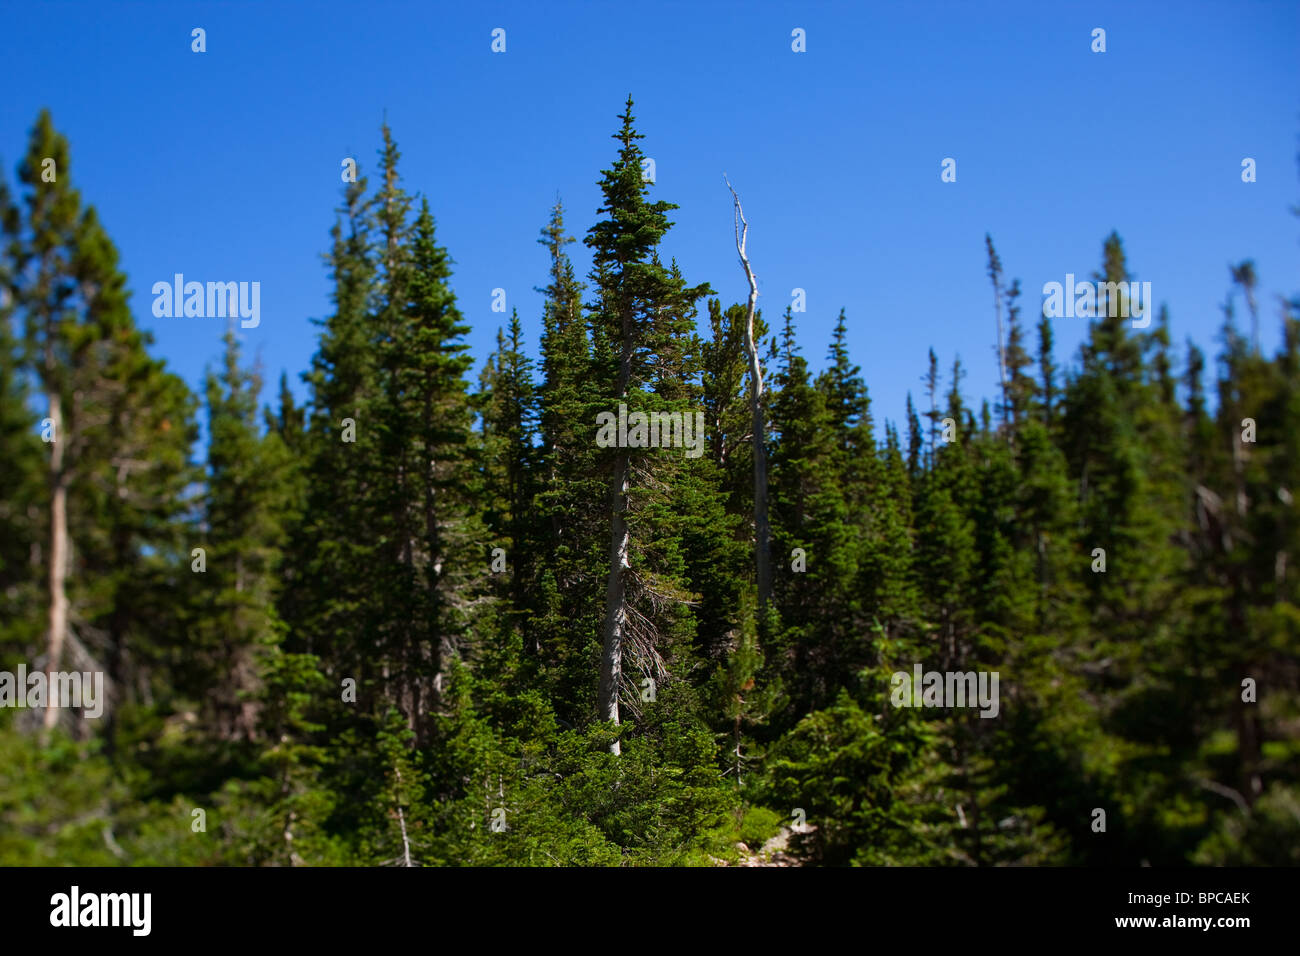 Colorado sunrise hiking in Rocky Mountain National Park, selective focus evergreen trees near Lake Helene. - Stock Image